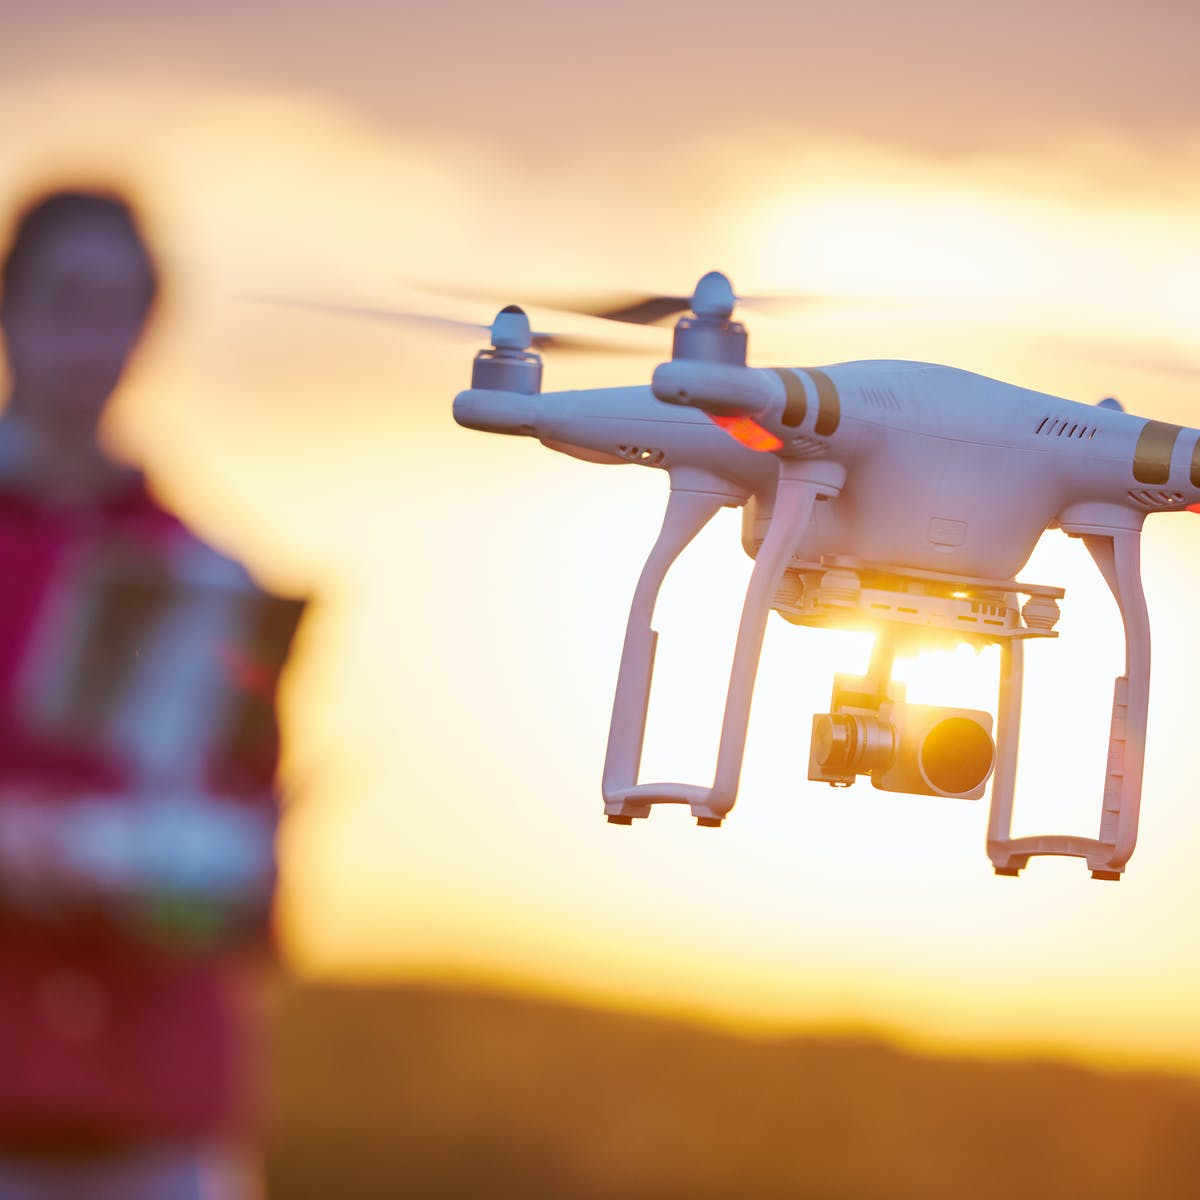 Got a drone for Christmas? Know the law before taking to the